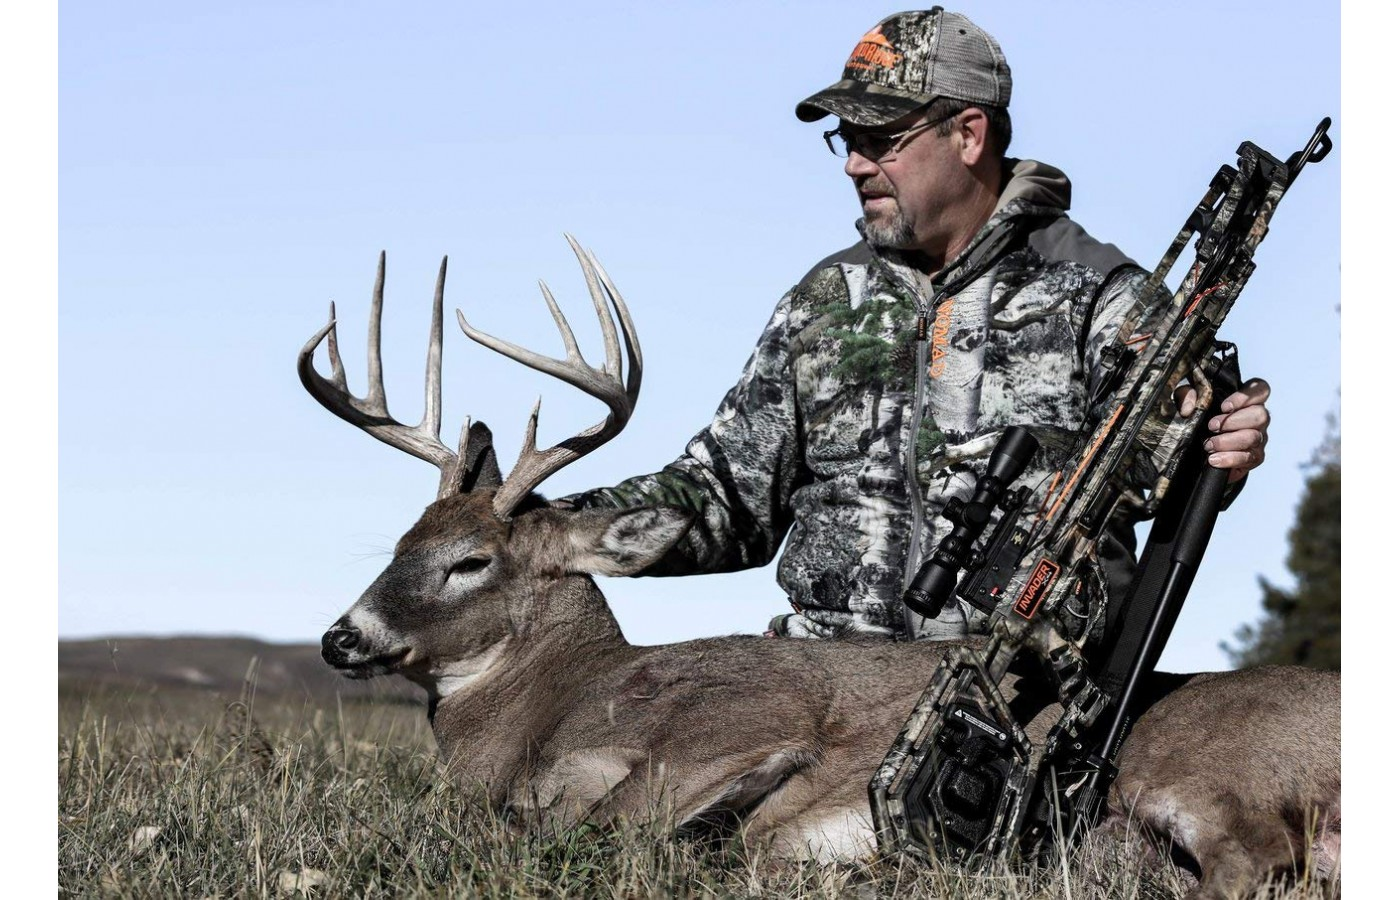 The TenPoint crossbow offers the power needed to take animals the size of deer easily.